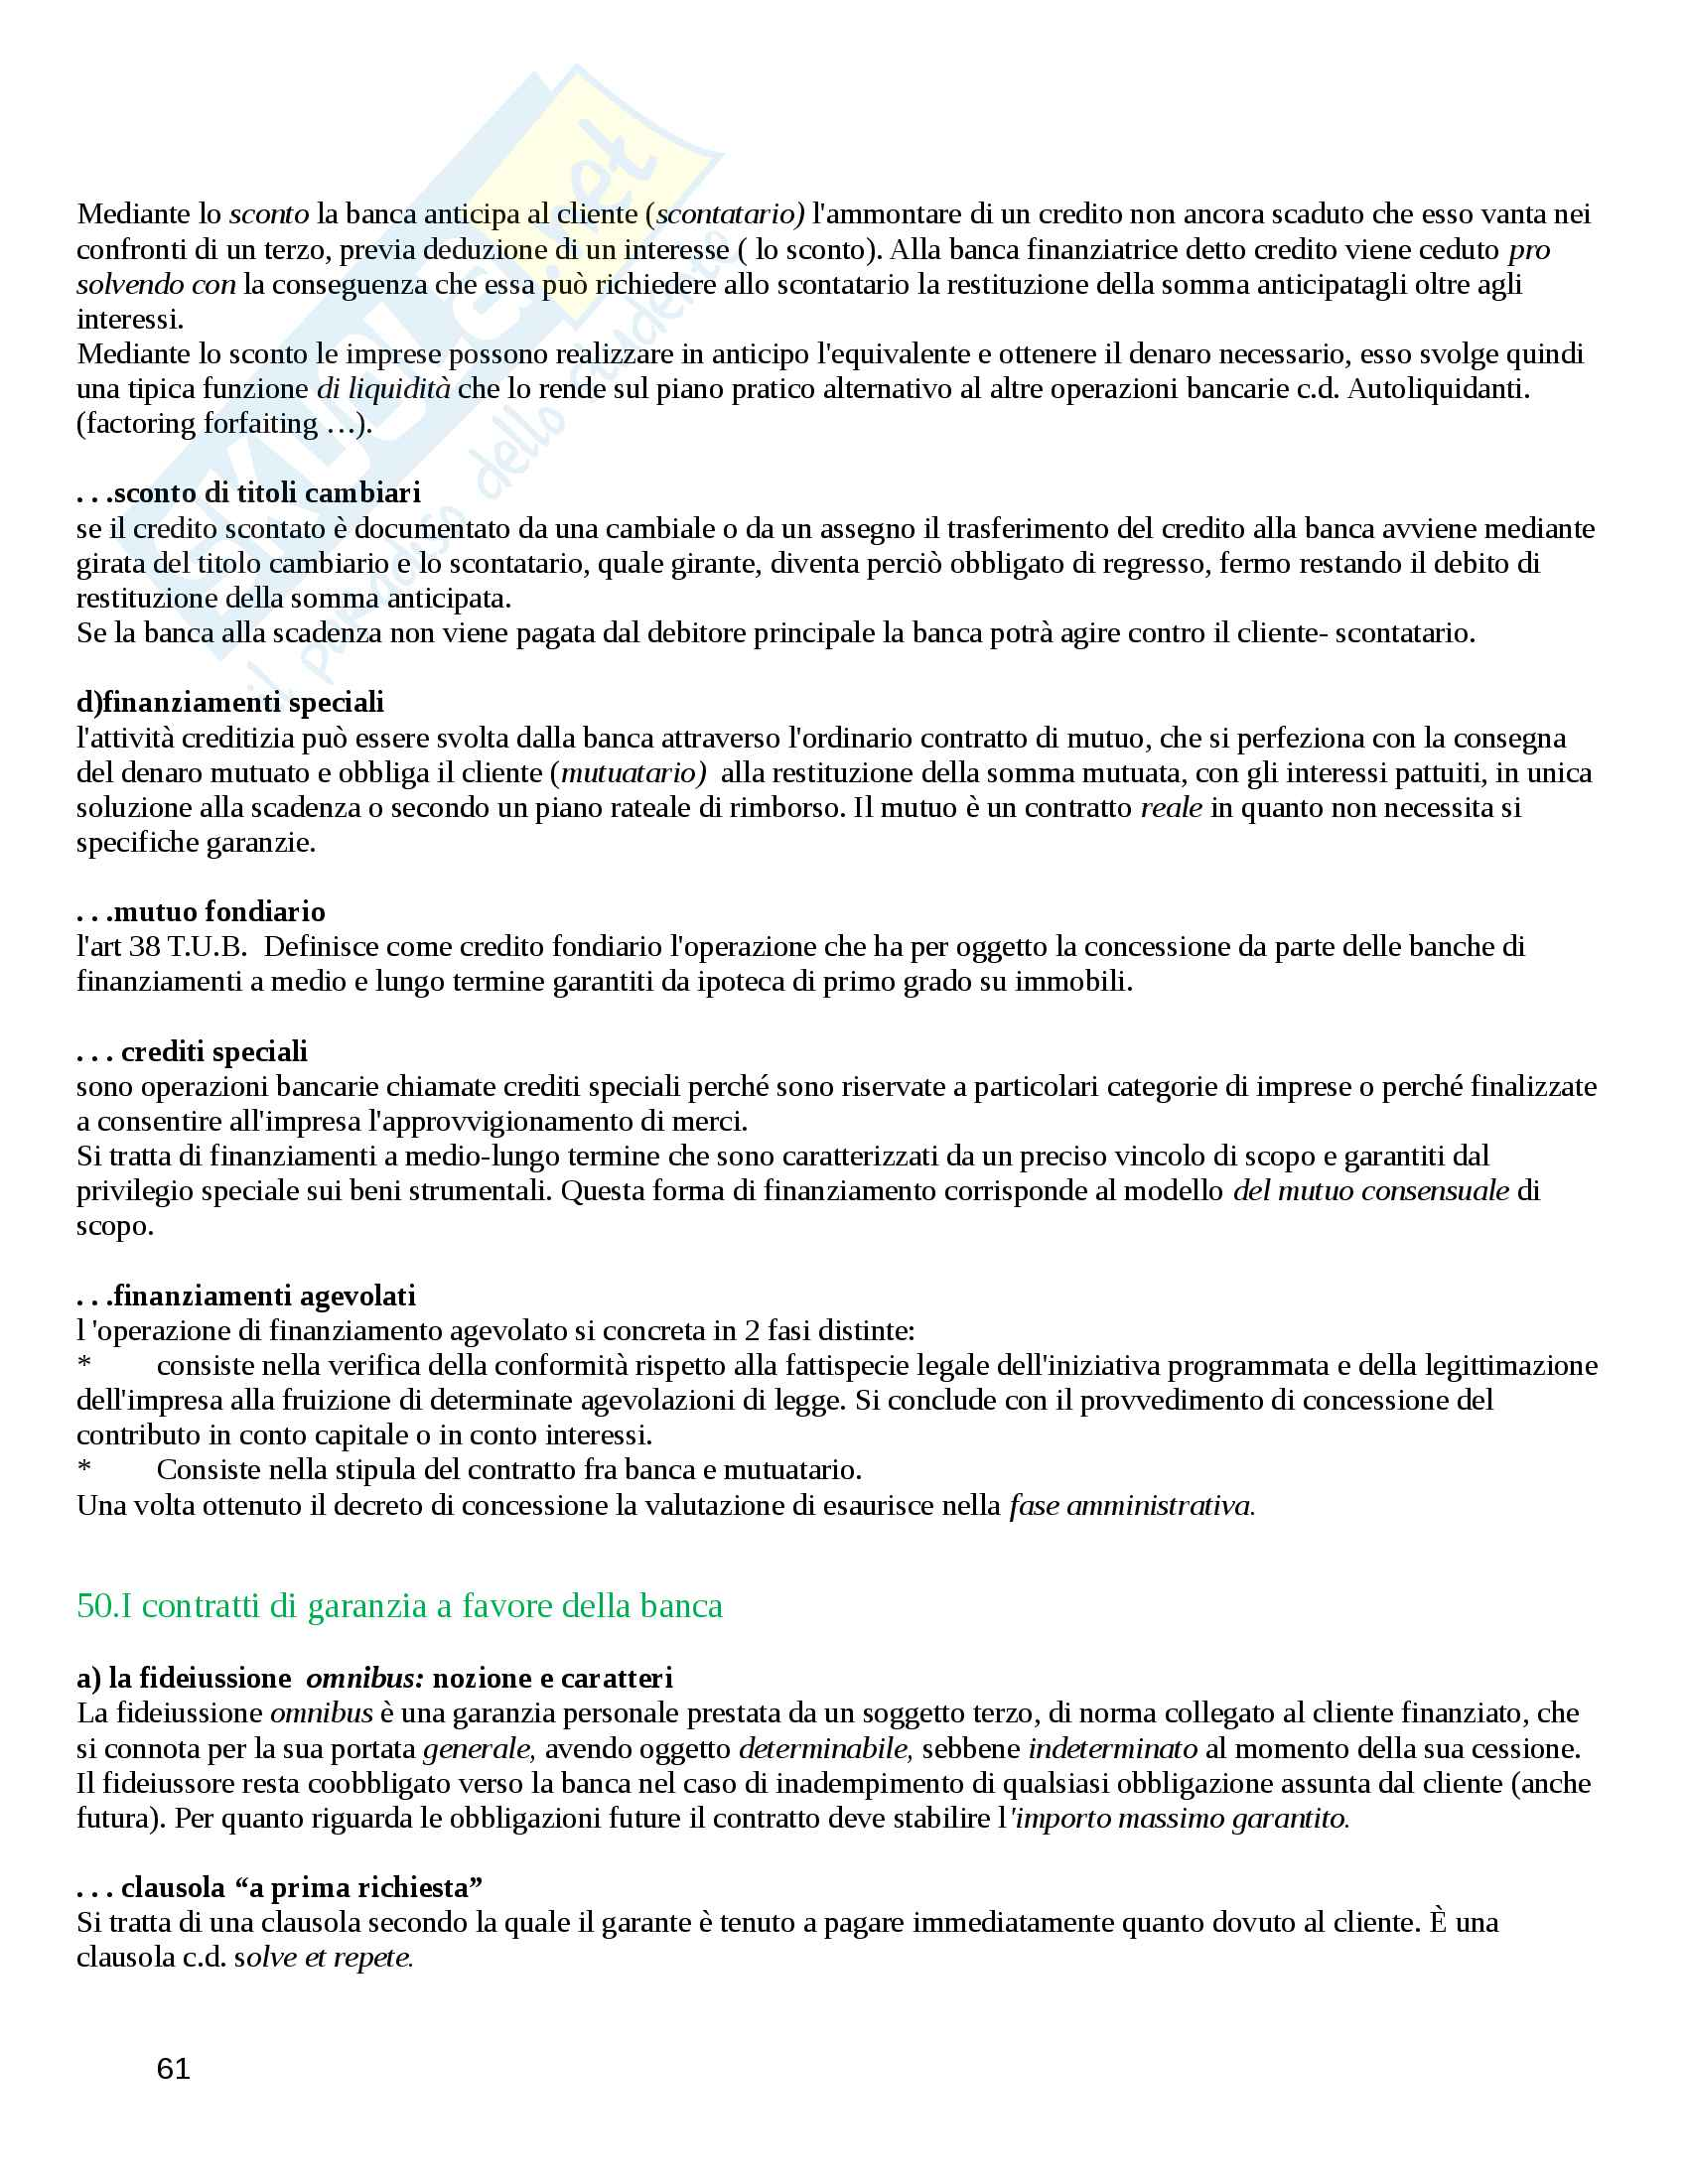 Diritto Commerciale Pag. 61